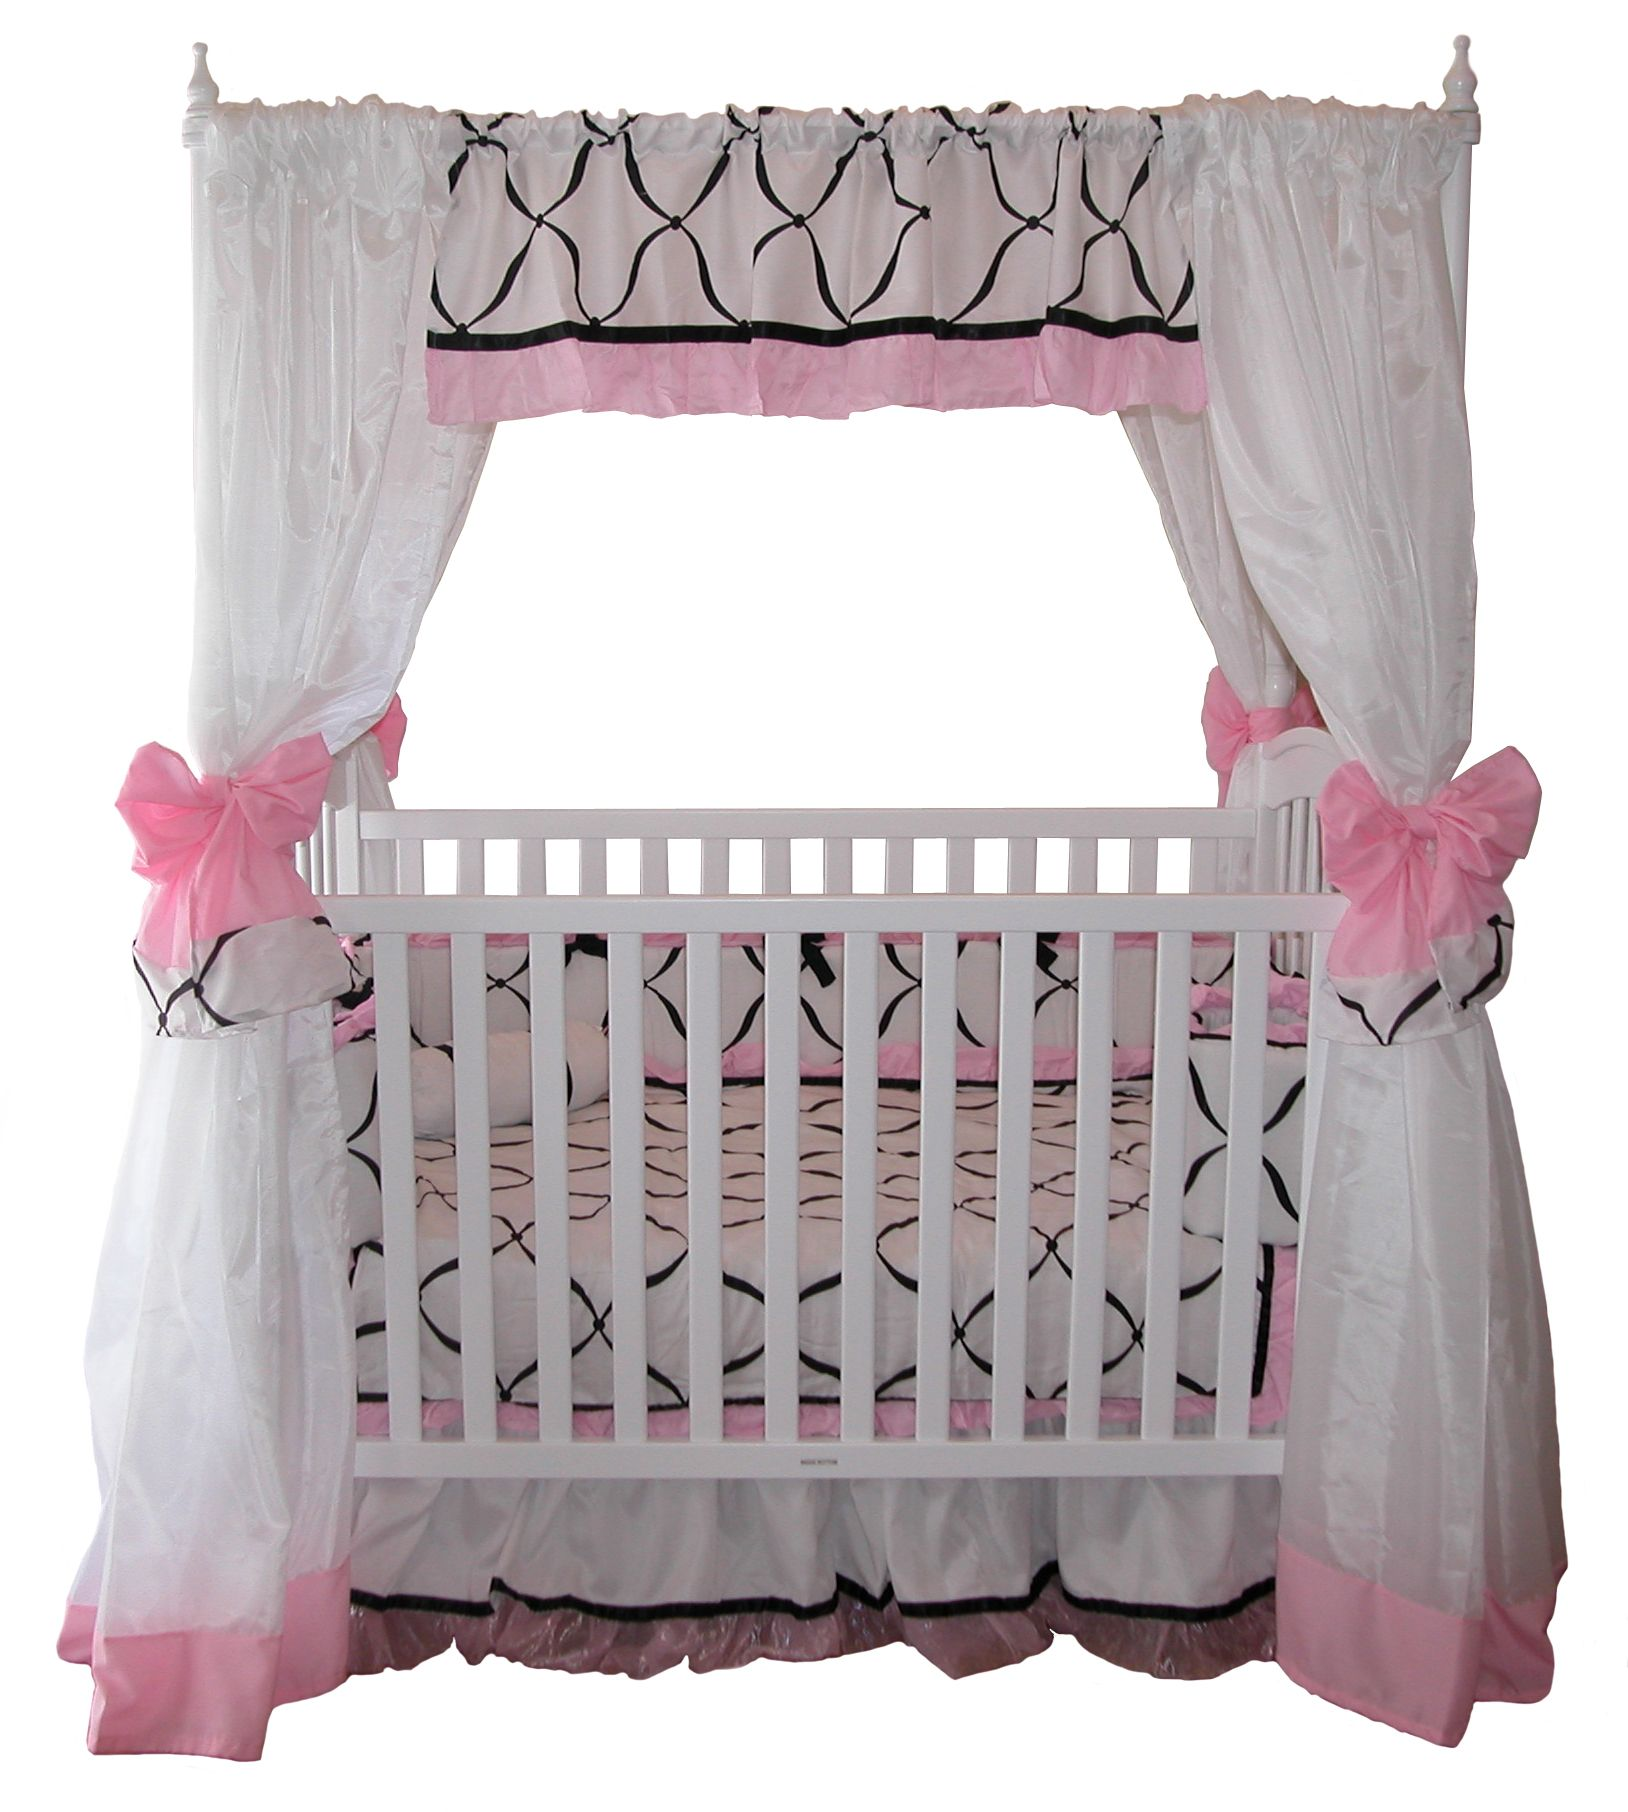 Wooden White Baby Crib with Black Curved Line Pattern Mattress and White Curtain Accessories that have Pink Ribbons for Baby Nursery Crib Decorating with ...  sc 1 st  Pinterest & Google Image Result for http://www.princesscanopybeds.com/images ...